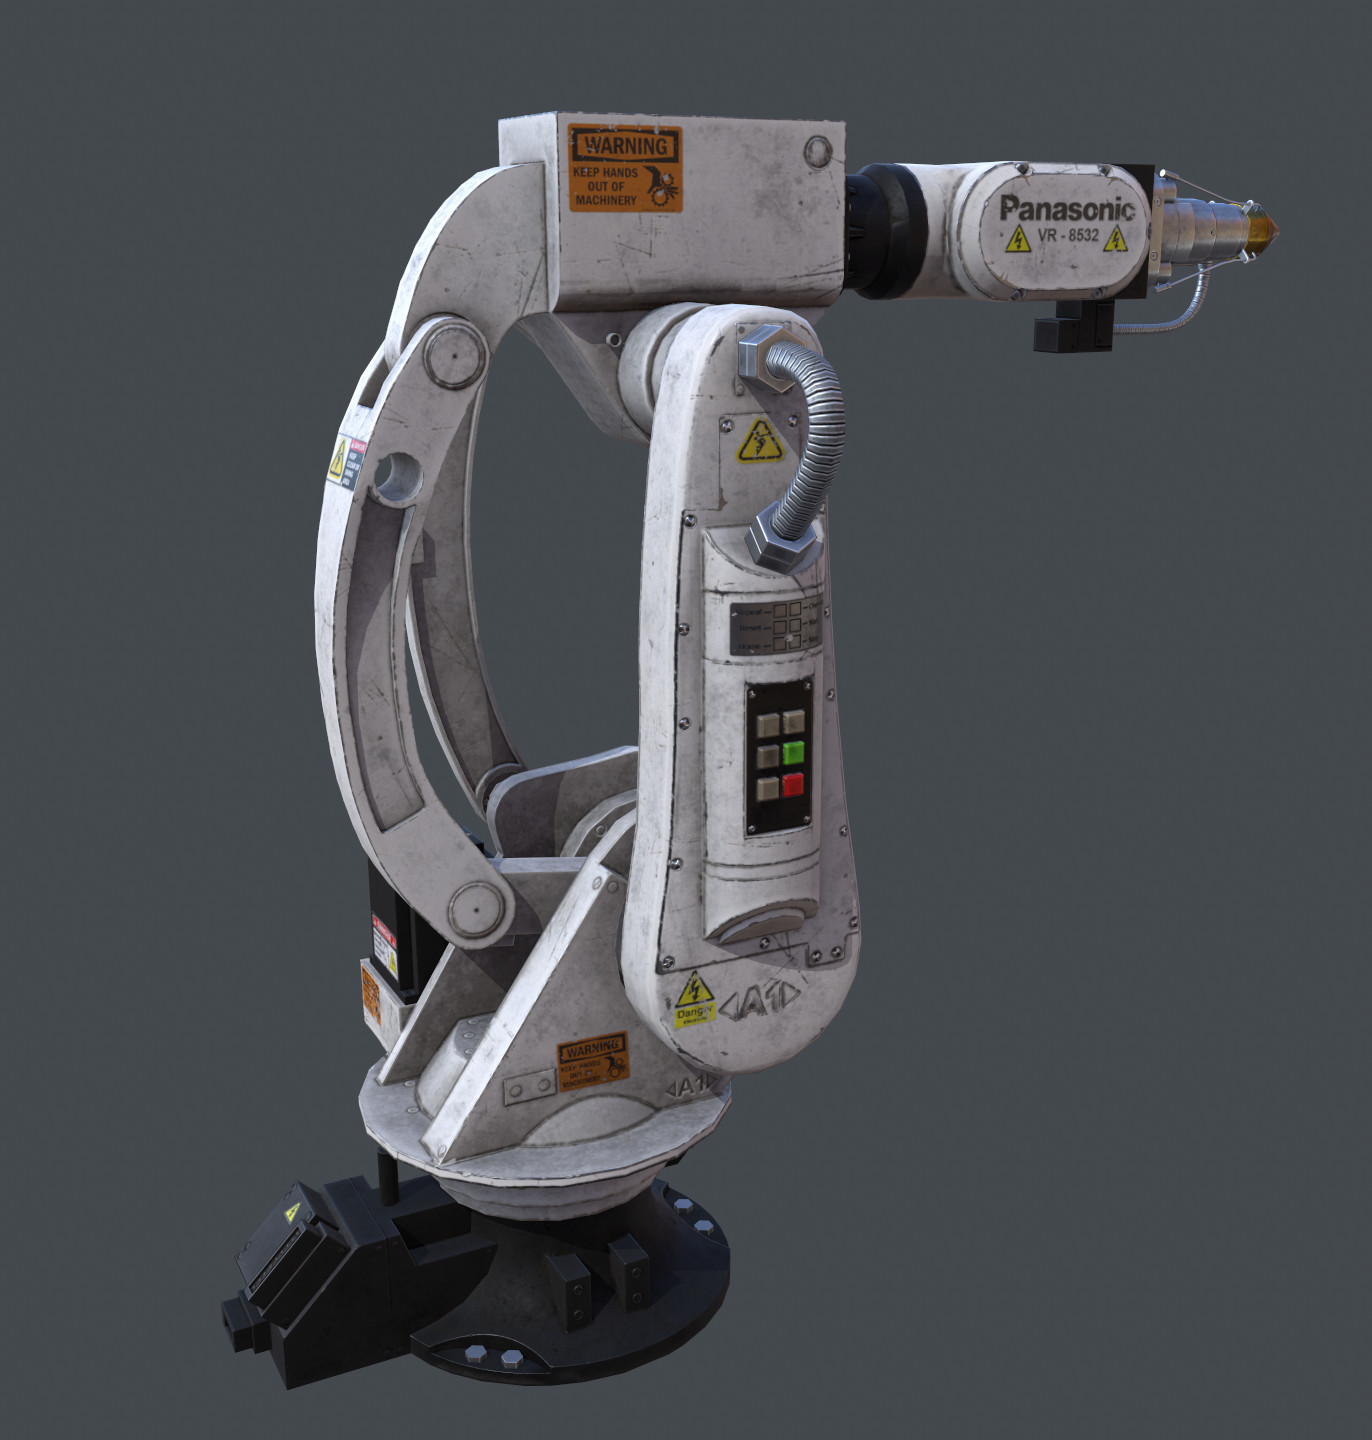 ArtStation - Robotic Arm - Own design, Andrew Phelan